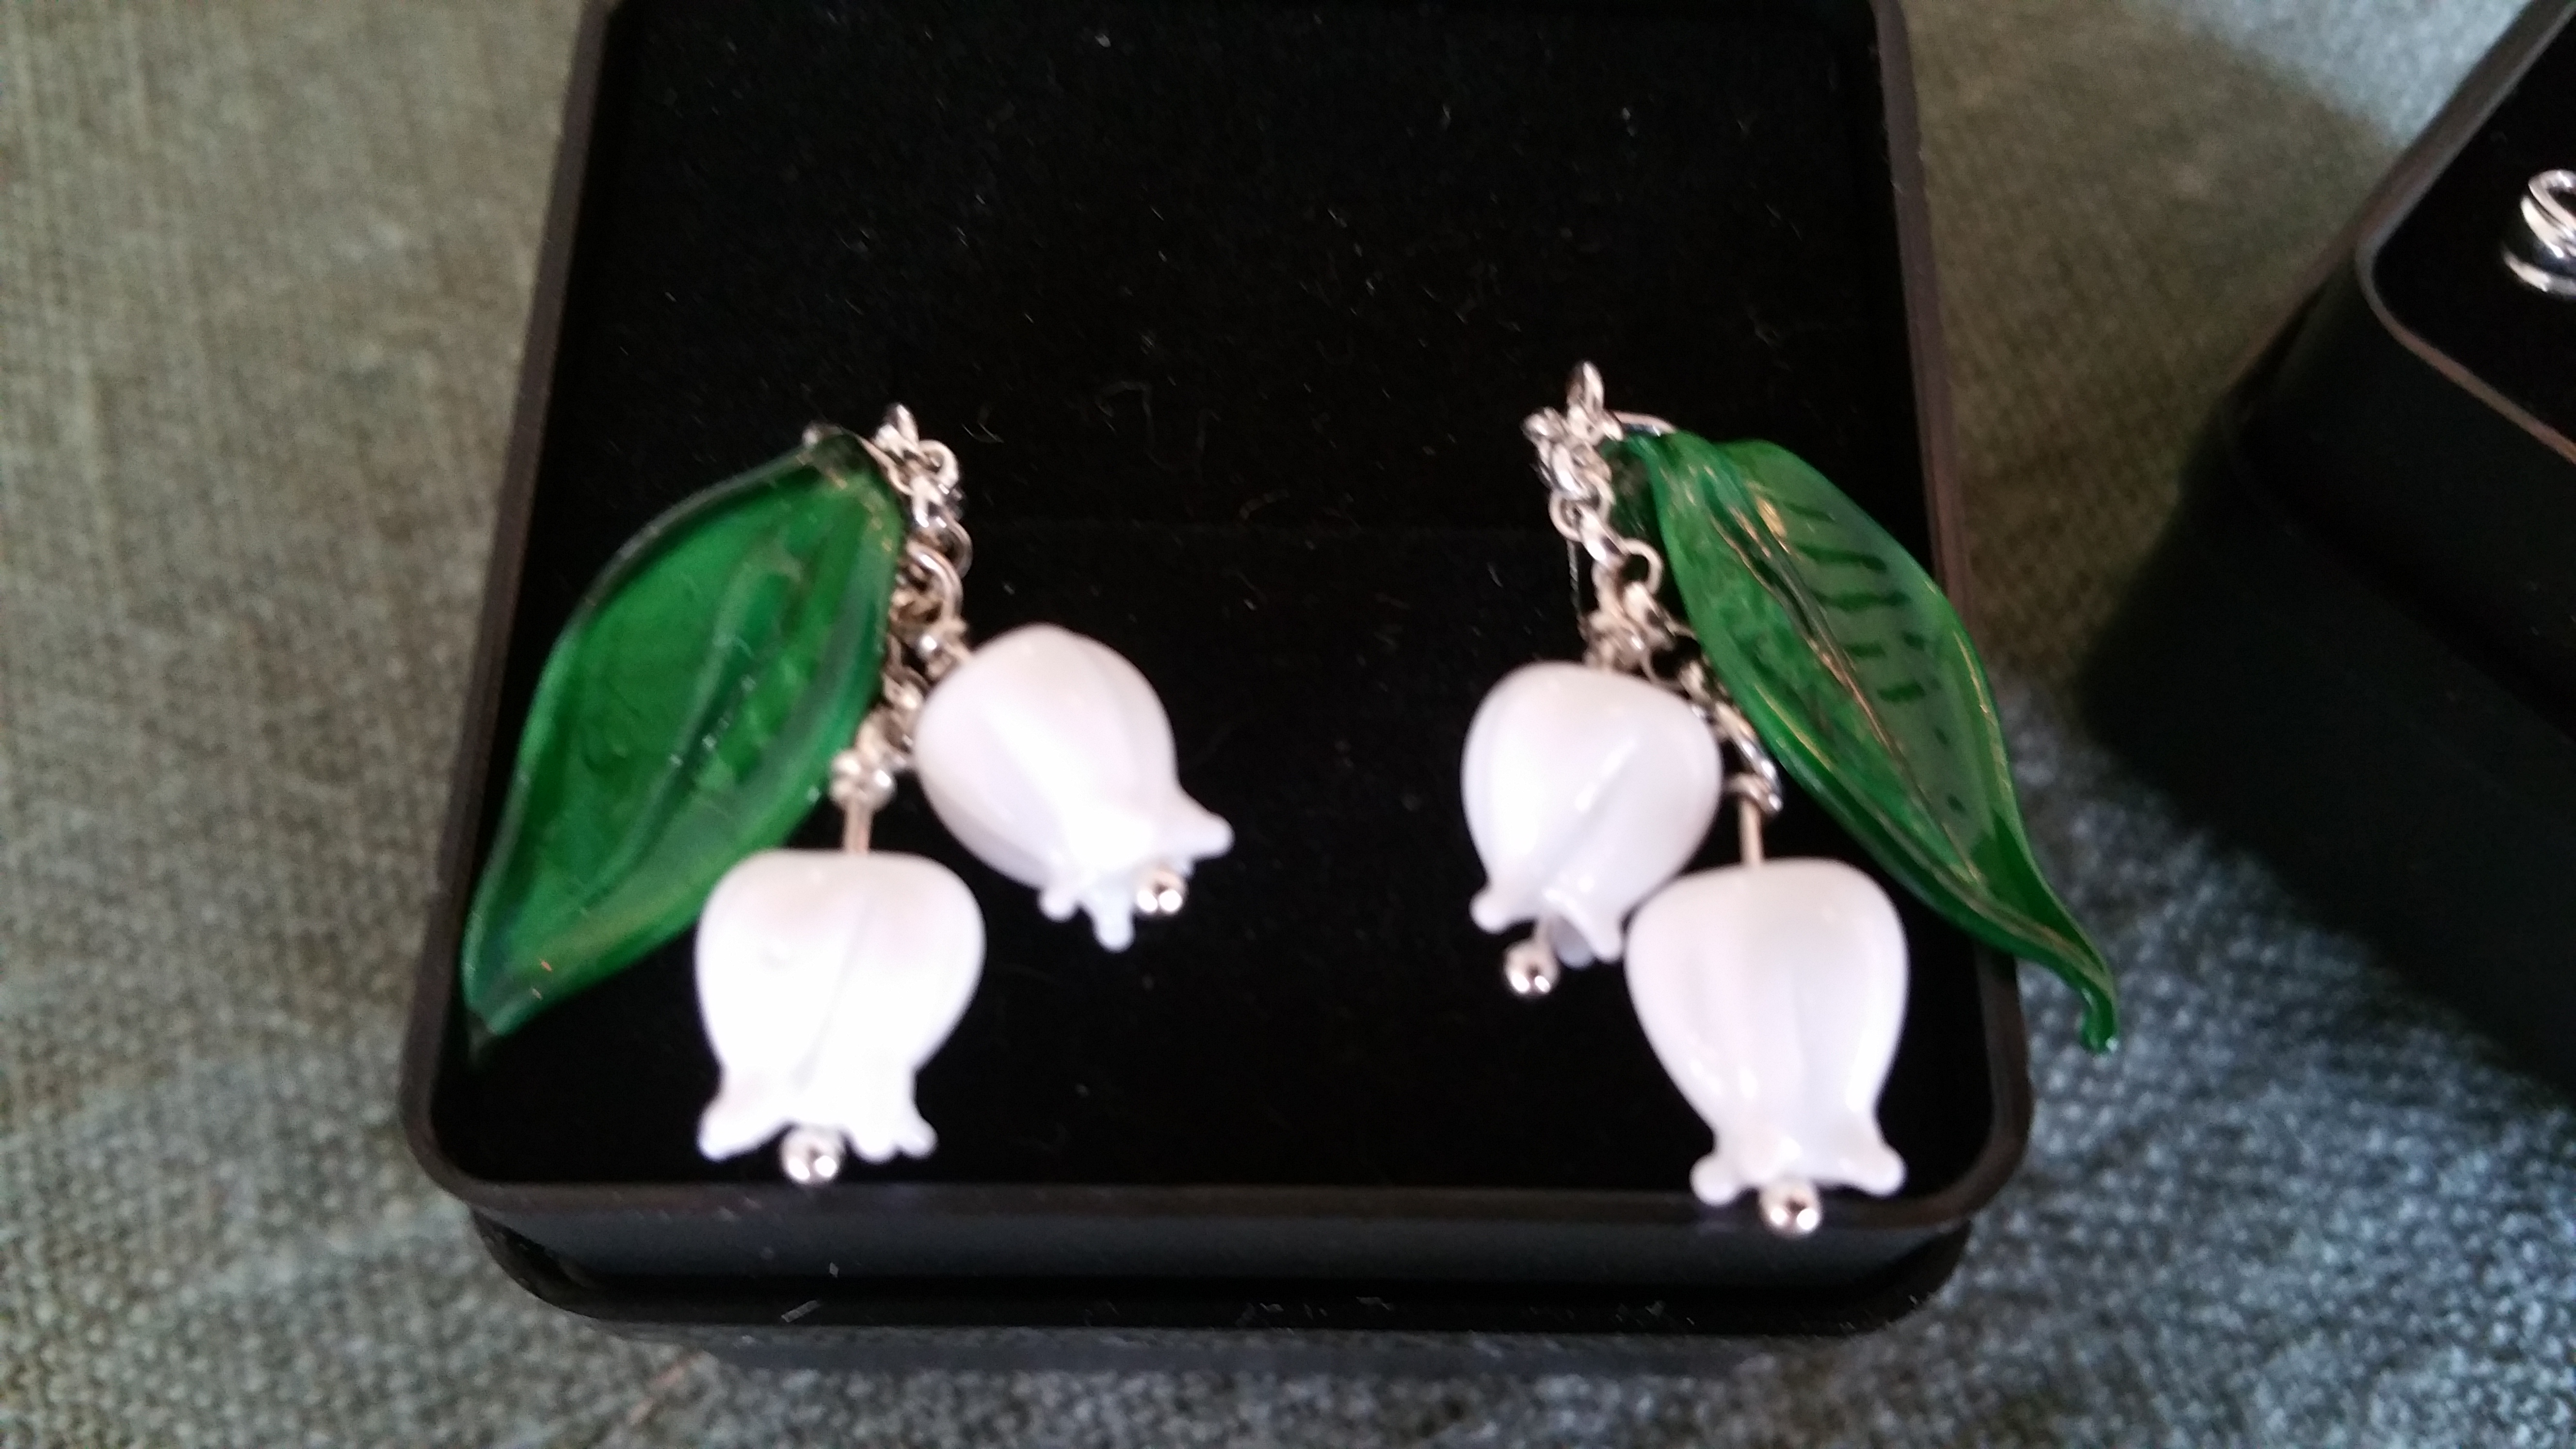 Lilly of the Valley earrings.